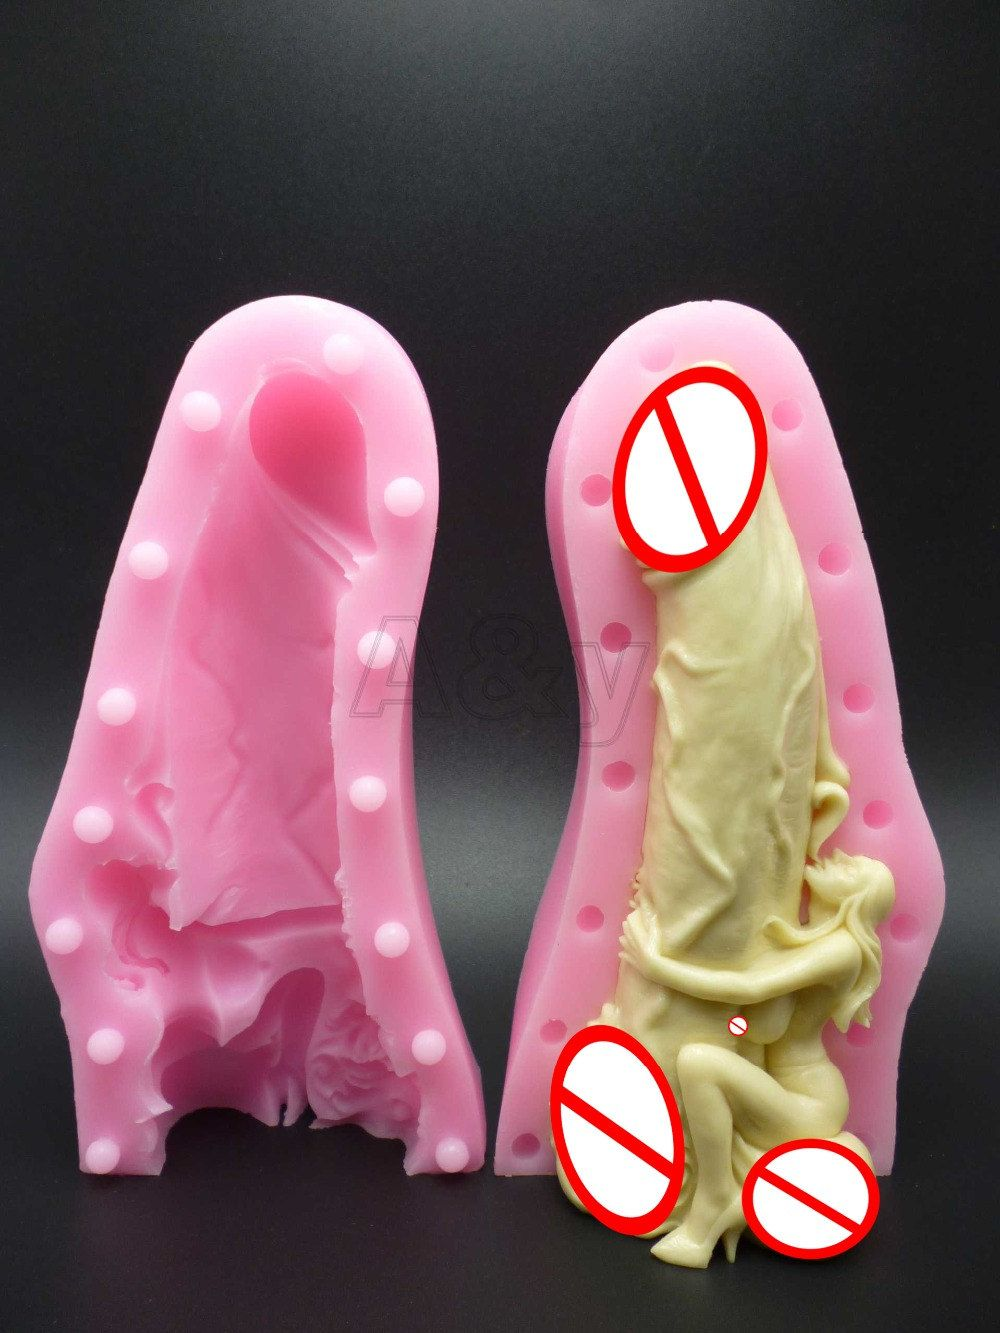 1pcs 3d Sexy Woman Hold Penis Shaped Silicone Cake Mould Dick Soap Mold Fondant Cake Decoration Birthday Cake By Msdiysupplies On Etsy